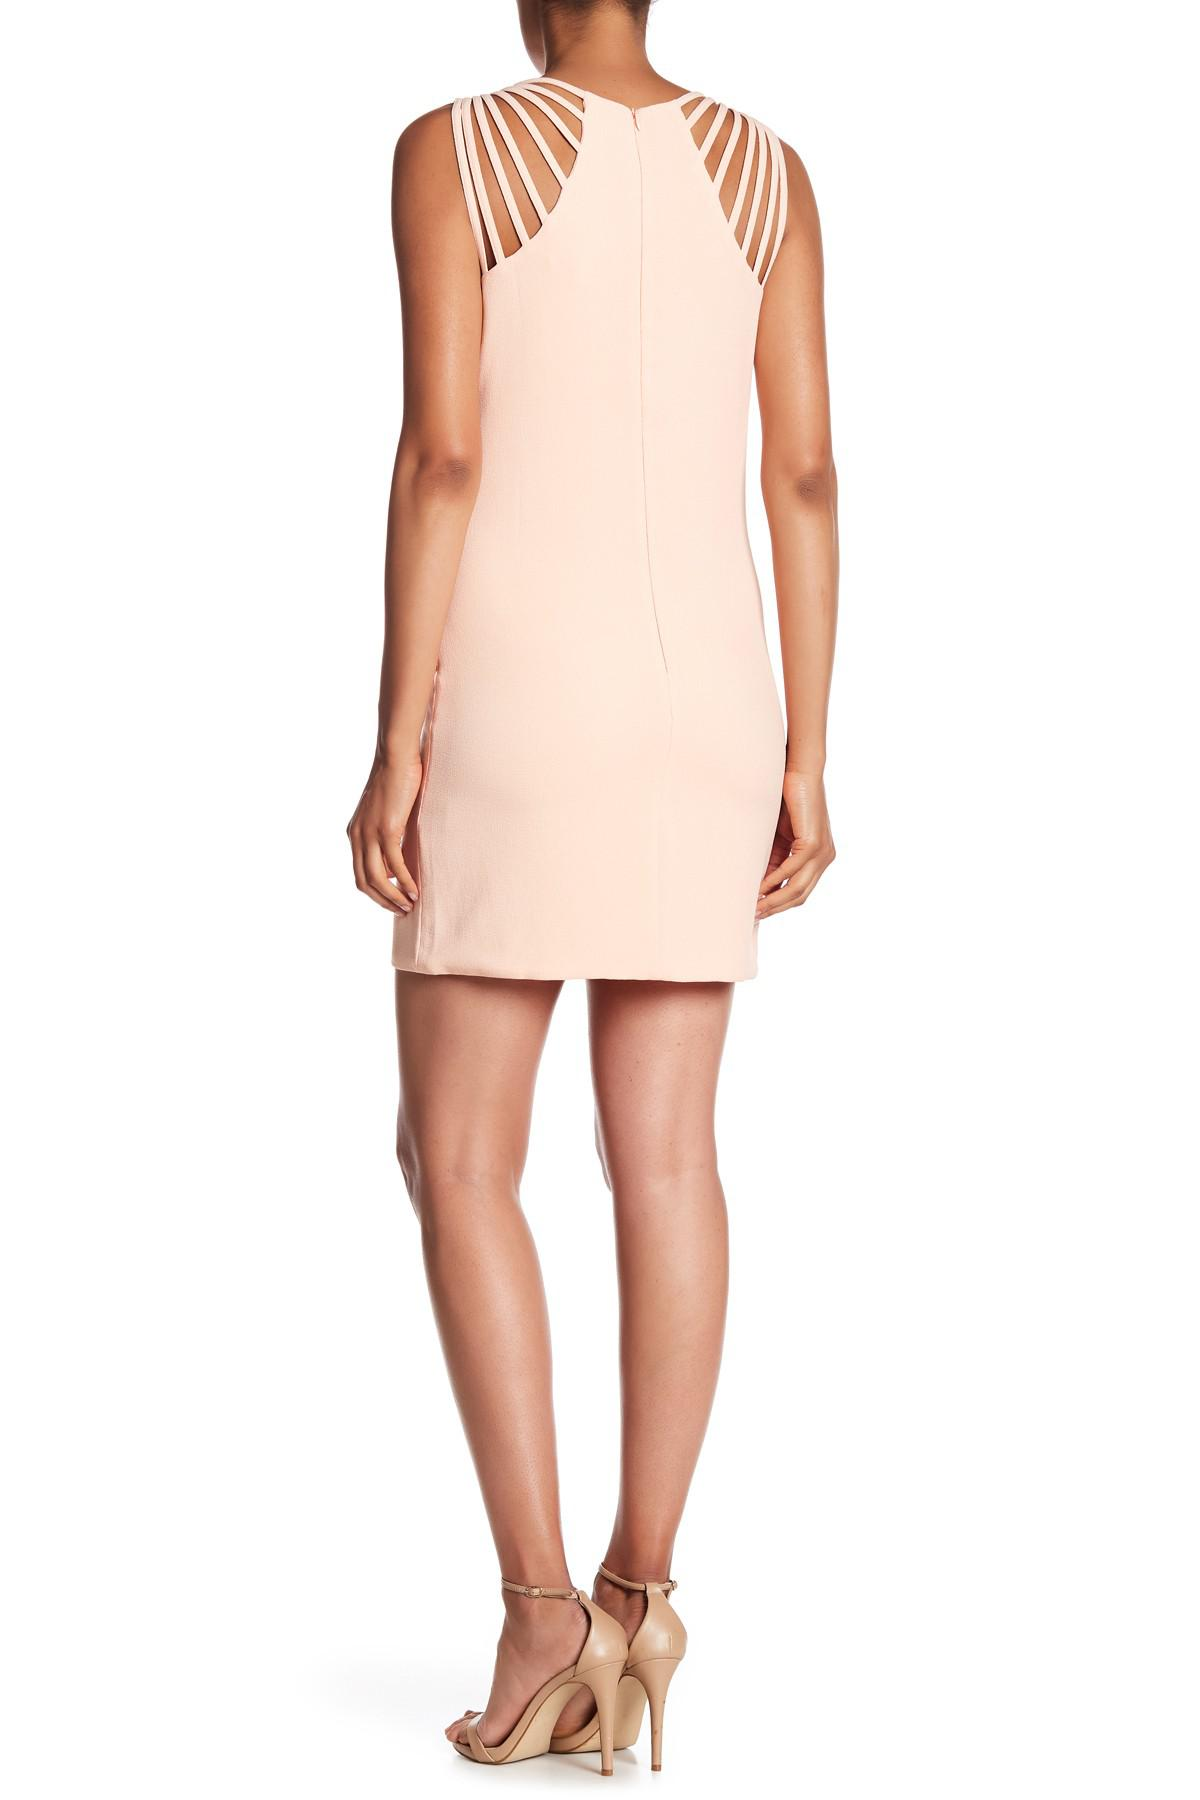 4dd7e23d Gallery. Previously sold at: Nordstrom Rack · Women's Pink Dresses Women's  Sheath ...